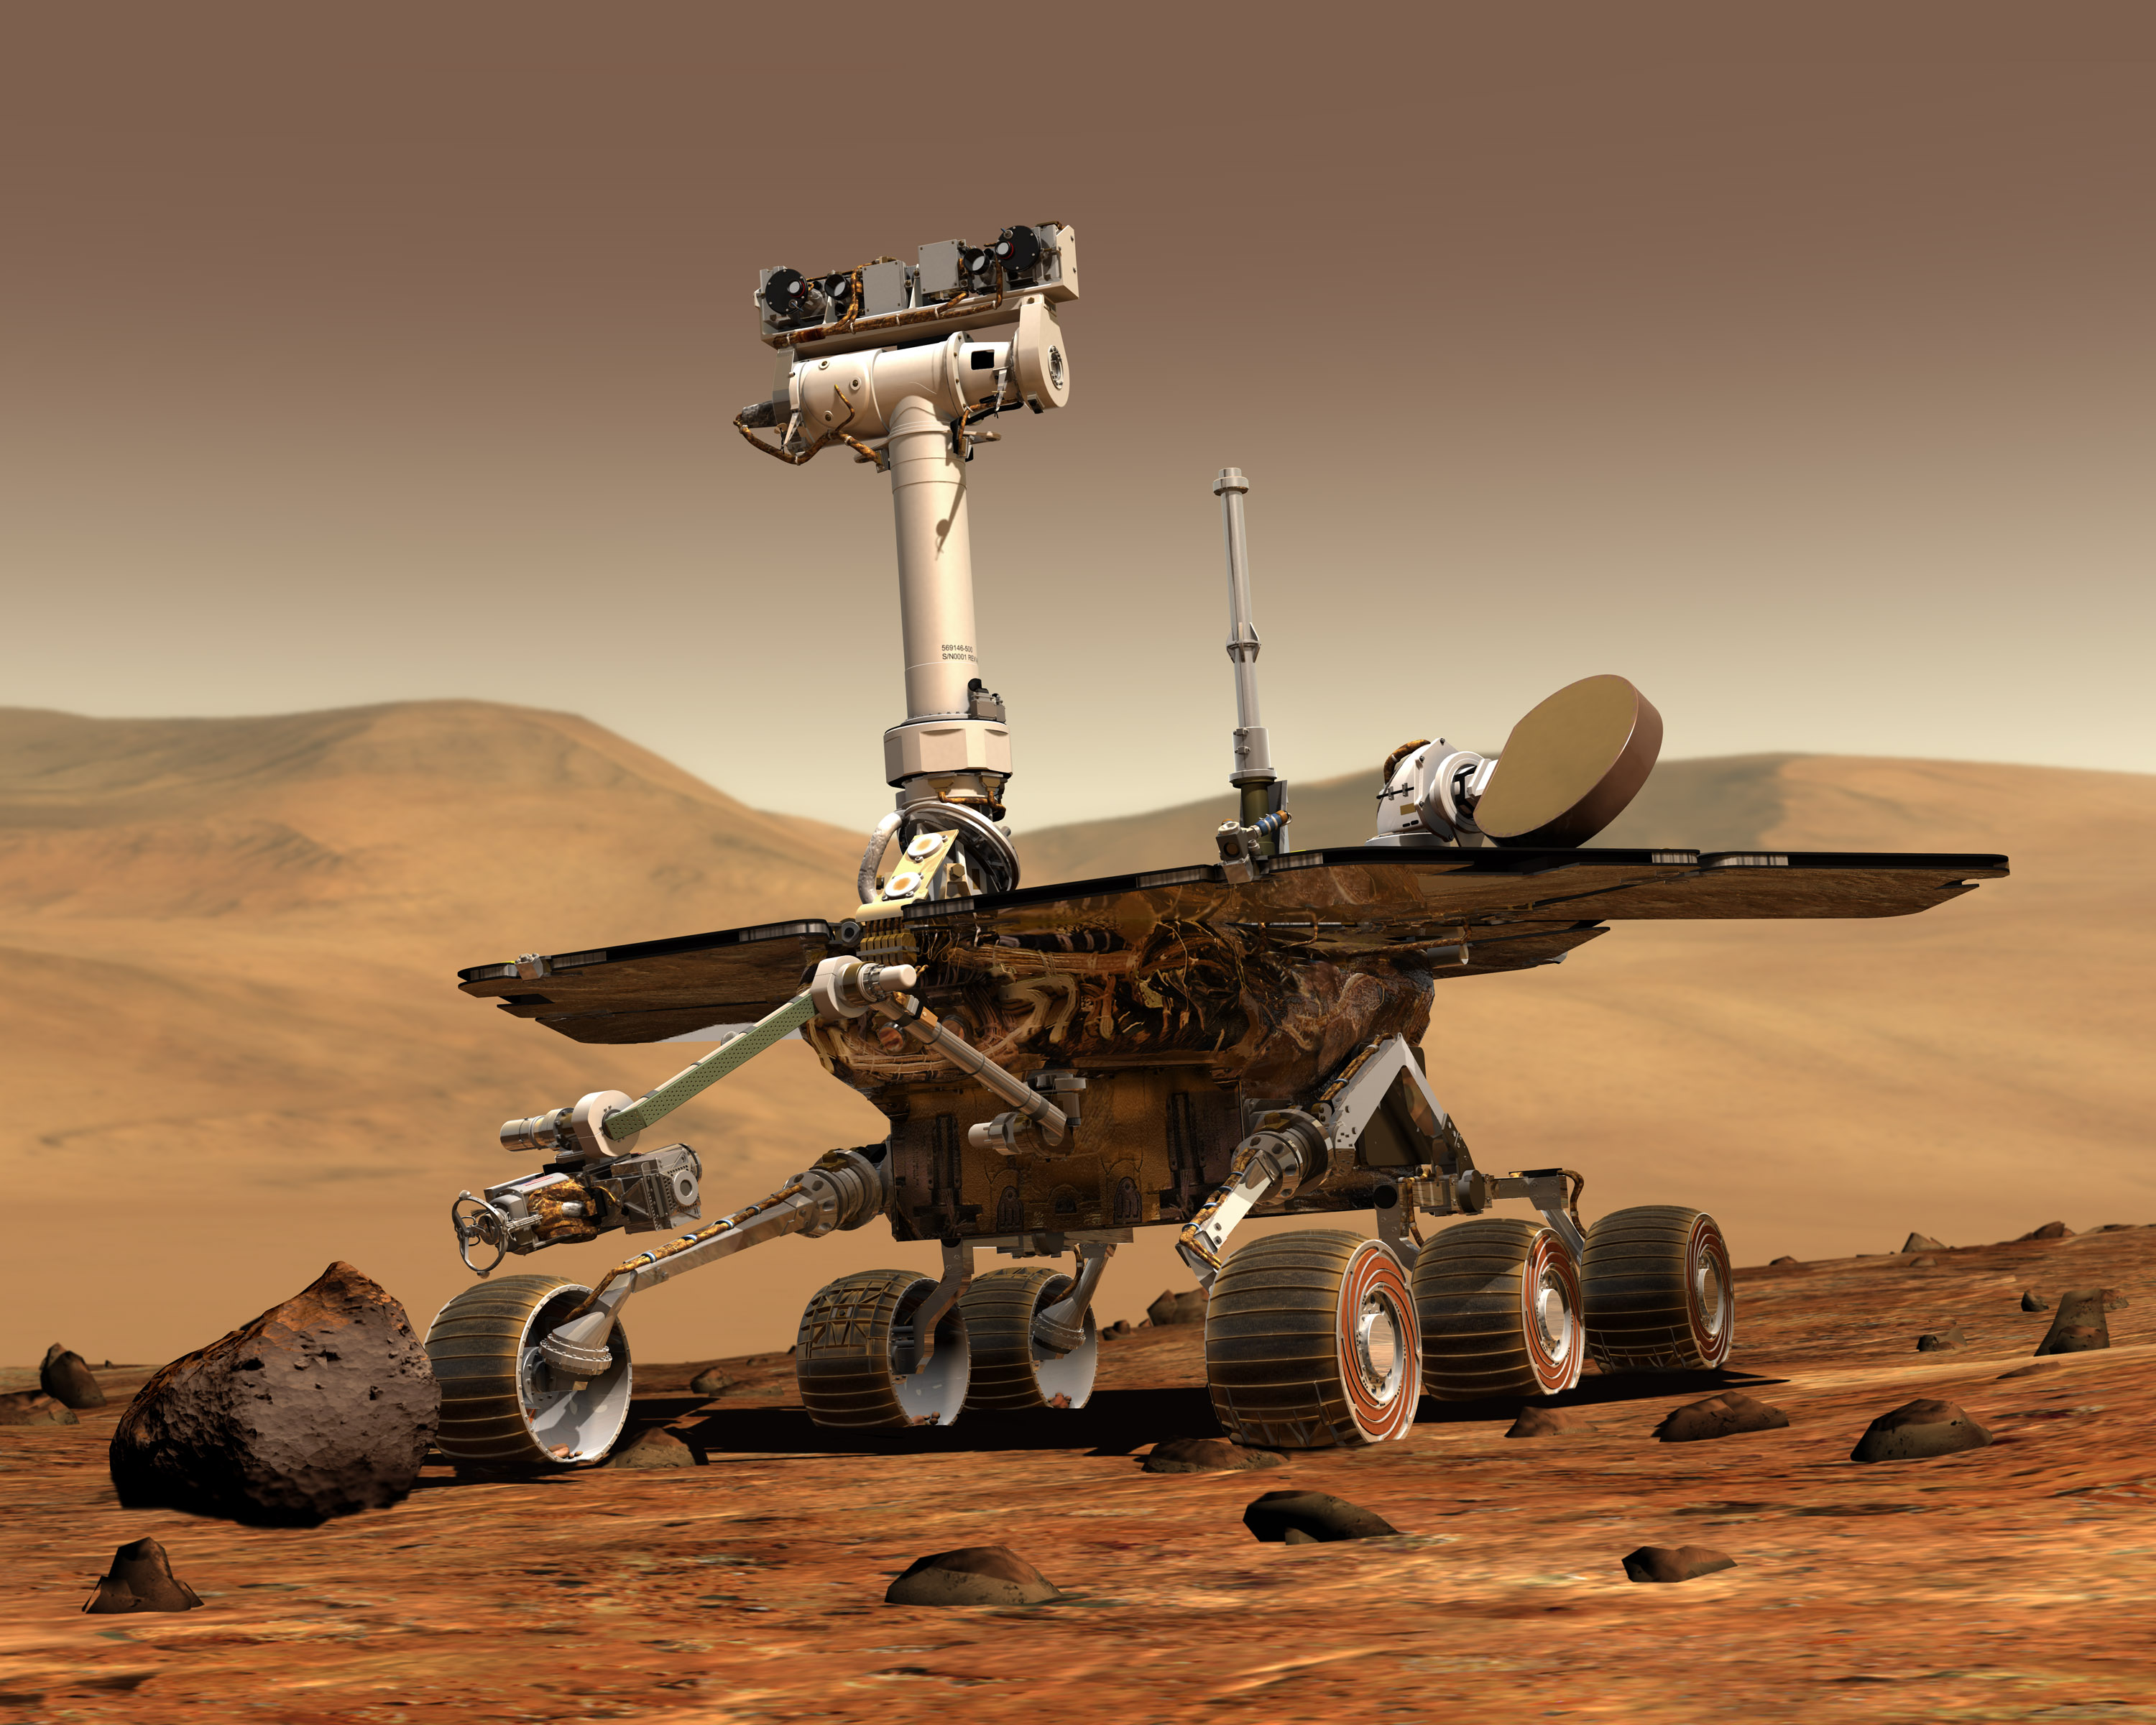 Mars exploration rovers update as spirit and opportunity rove on mars exploration rover sciox Images